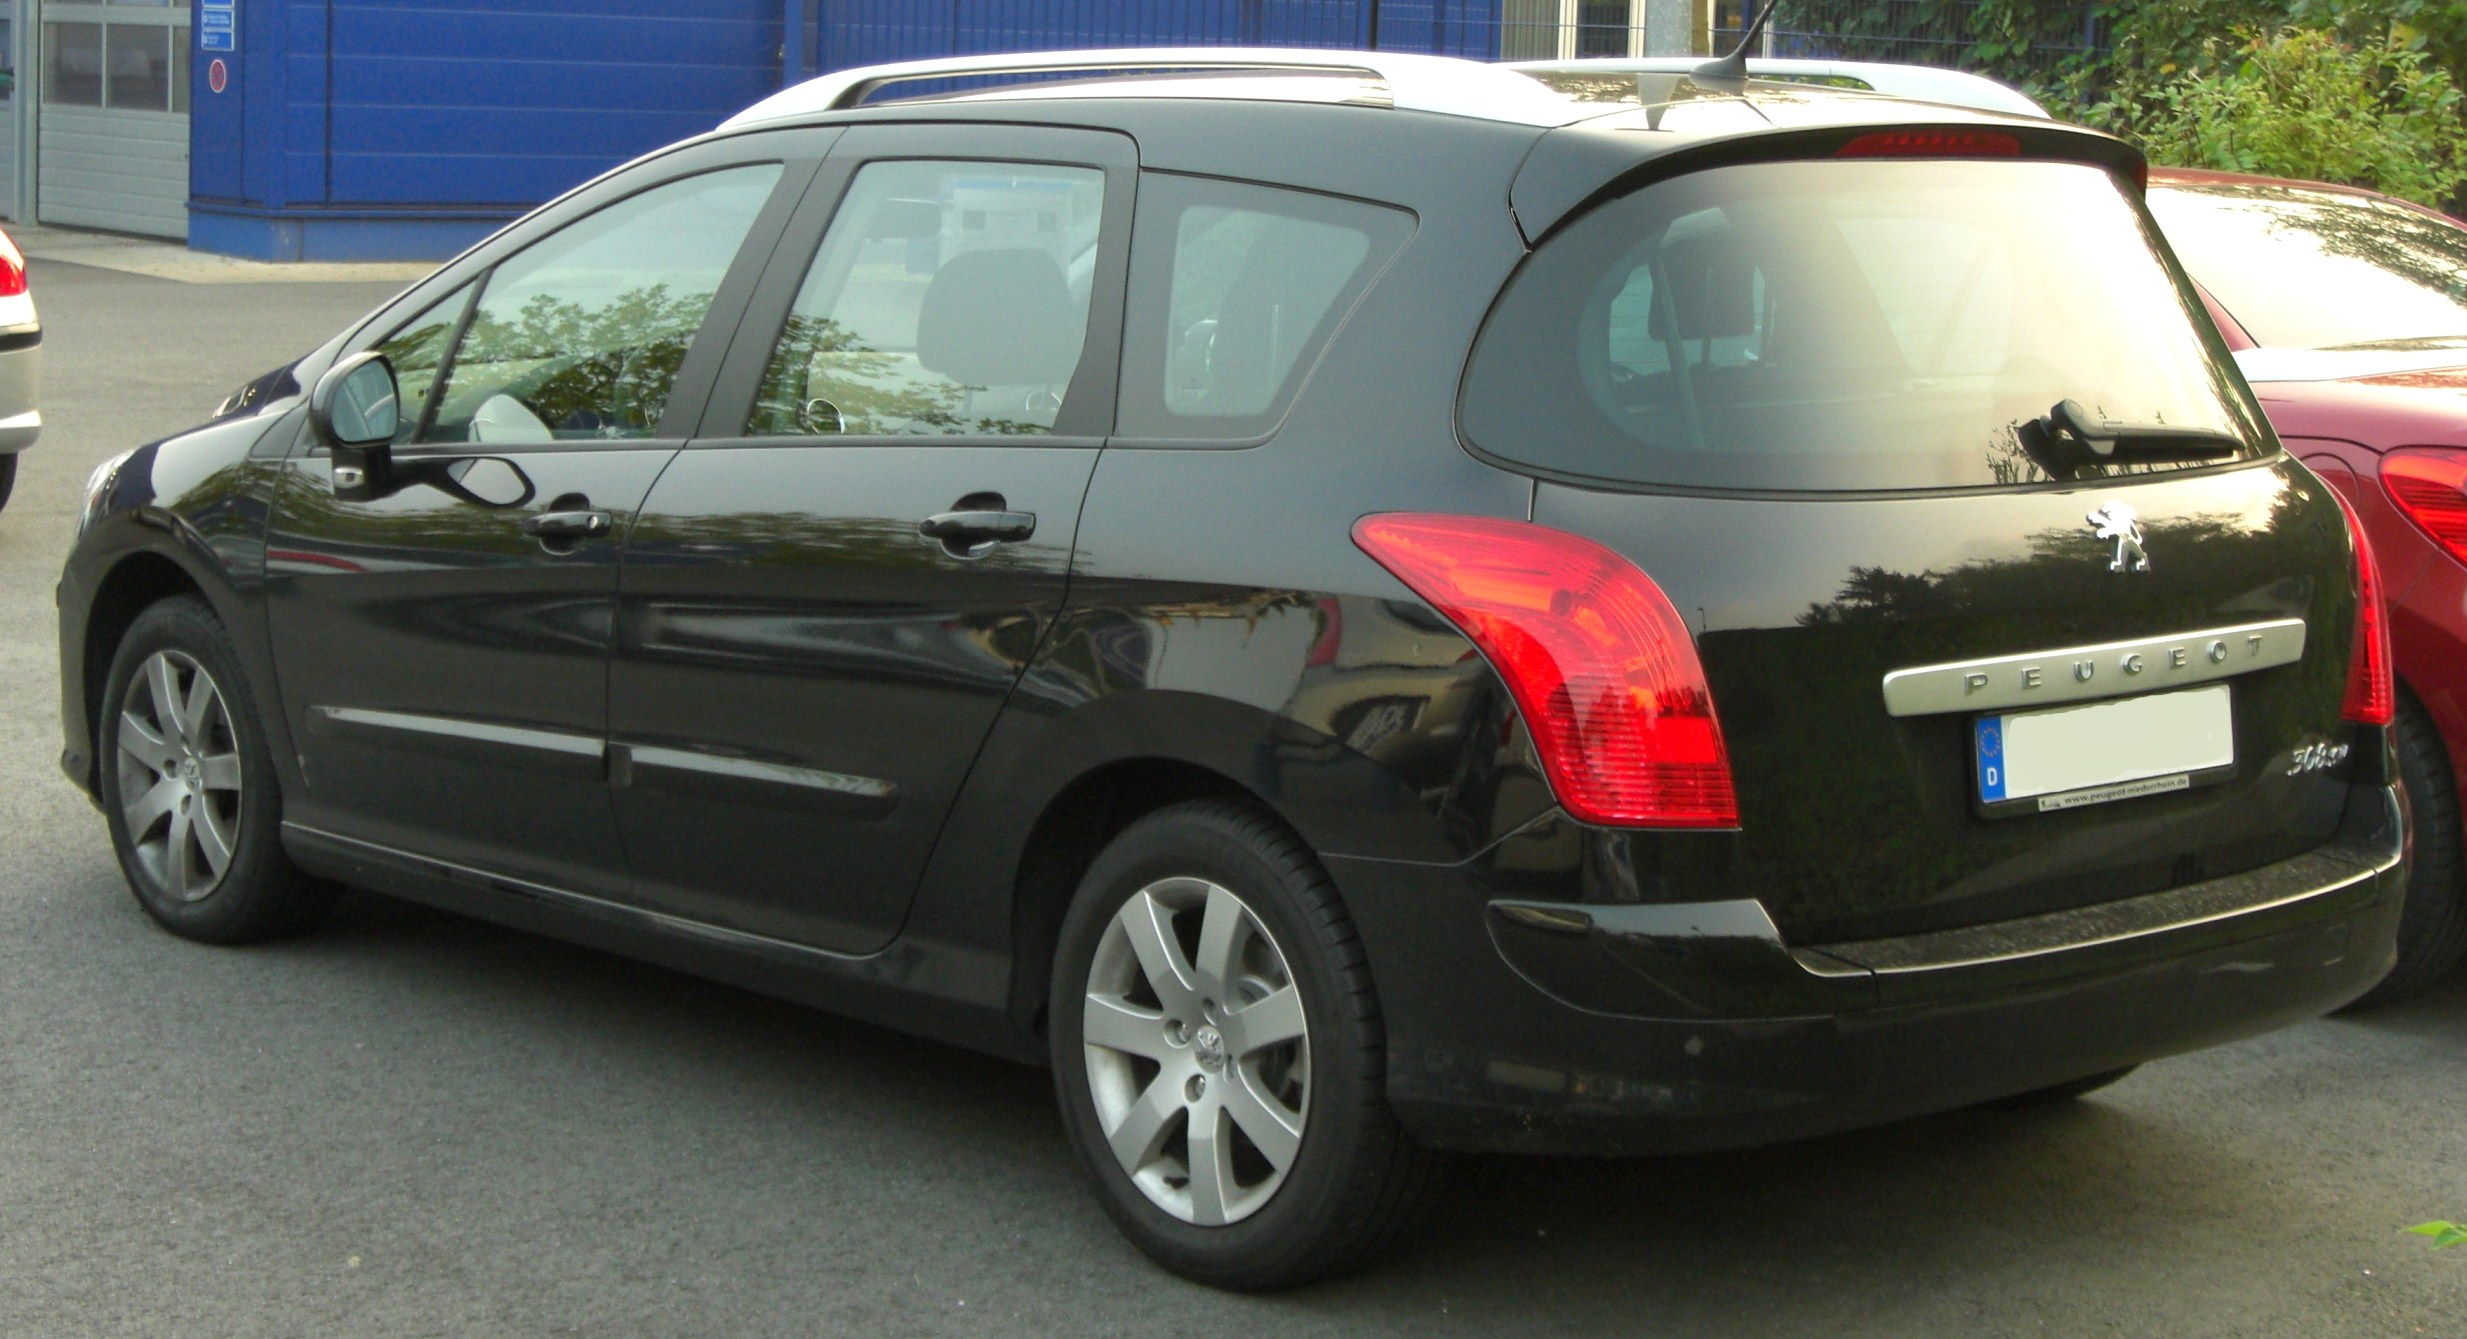 File Peugeot 308 Sw Rear 1 Jpg Wikimedia Commons